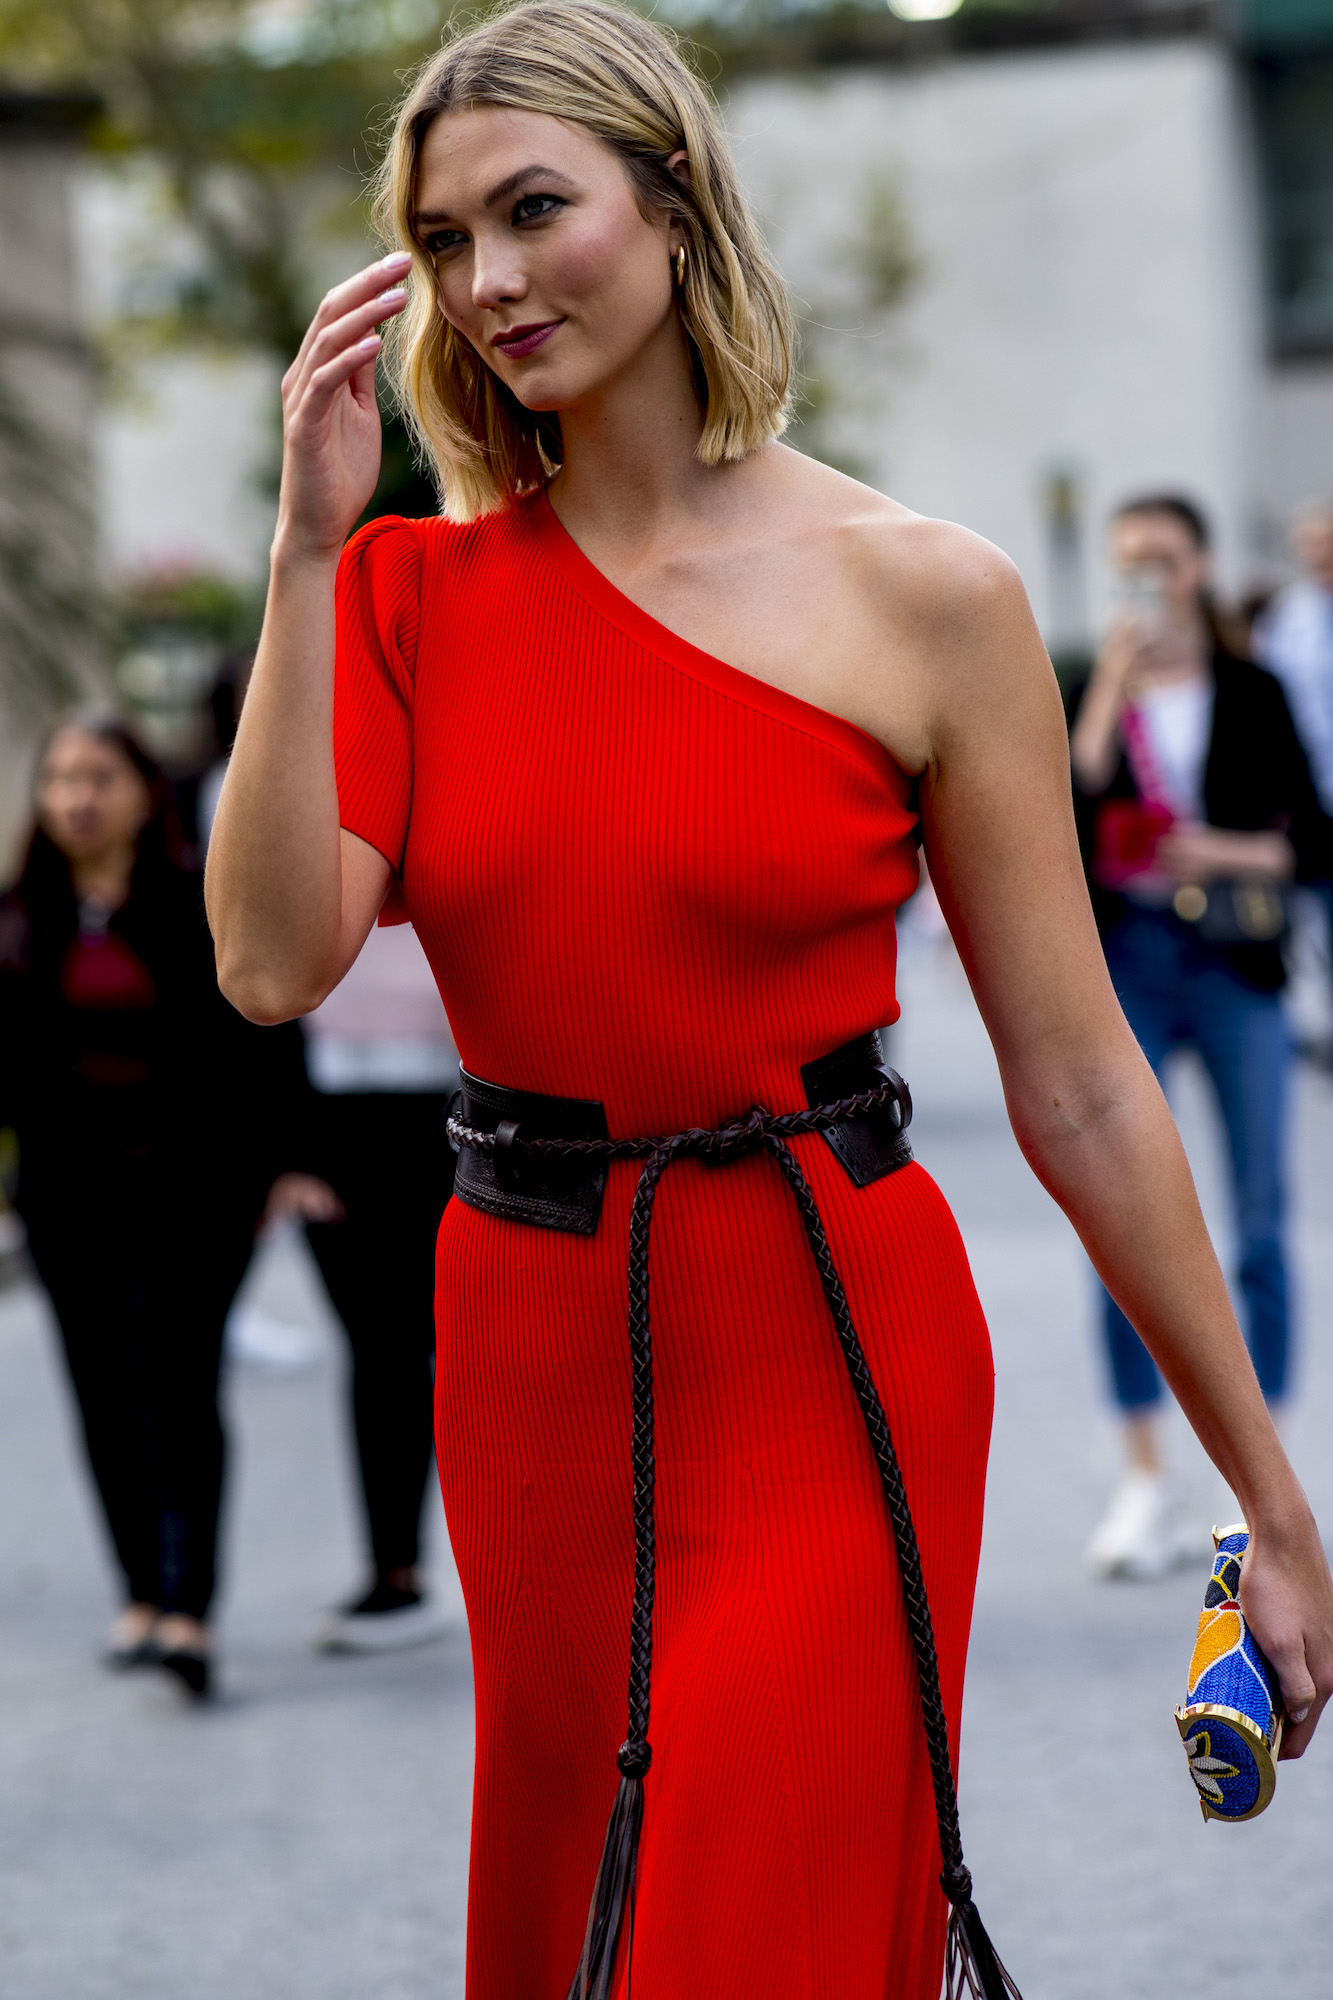 New York Fashion Week Spring/Summer 2020 street style - Karlie Kloss